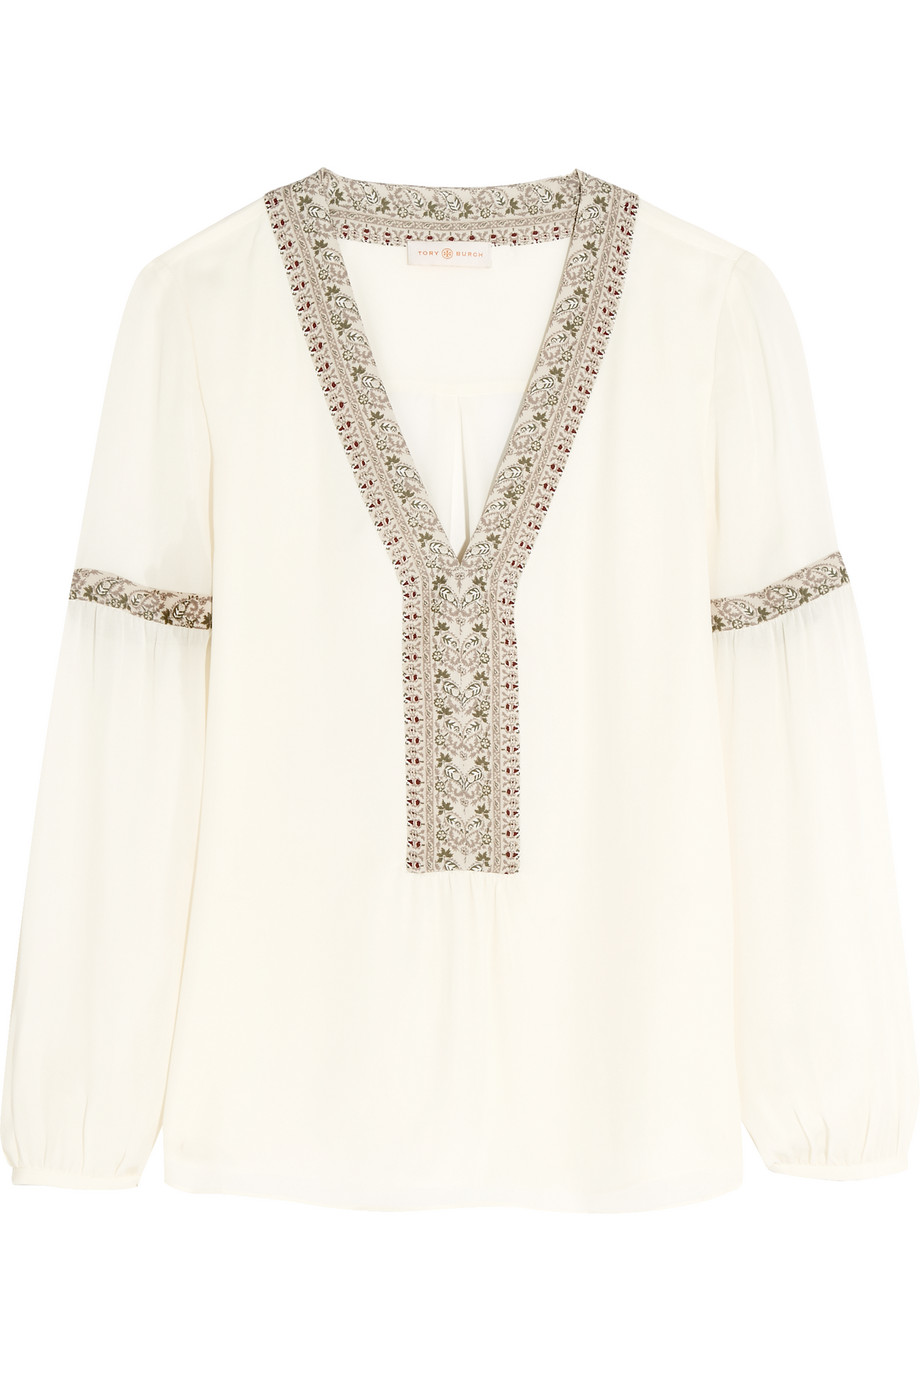 Tory Burch Paisley-Trimmed Silk Blouse, Ivory, Women's, Size: 8